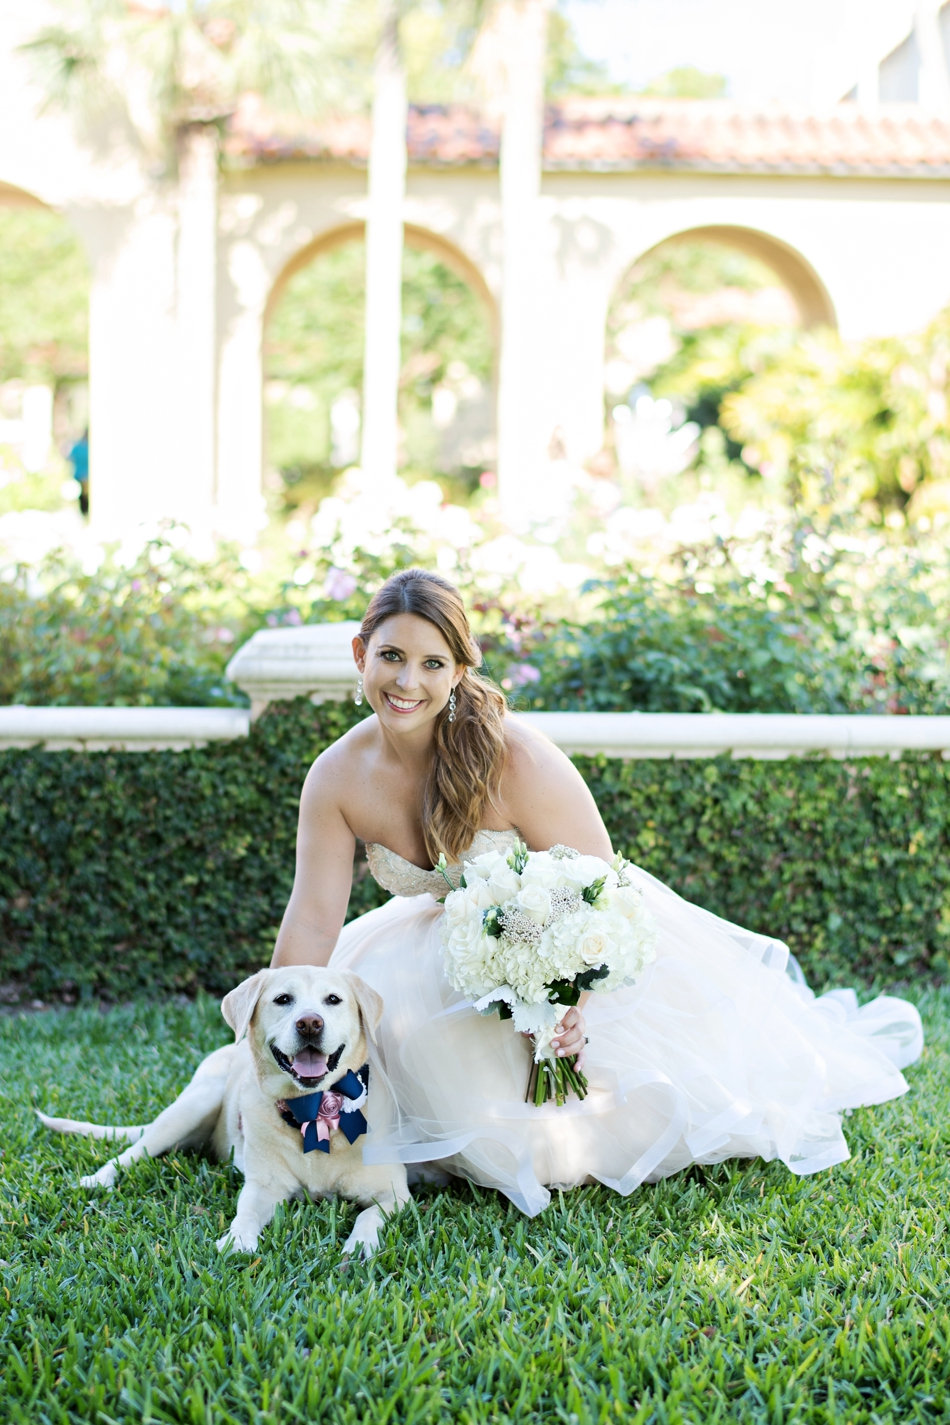 I love dogs and weddings